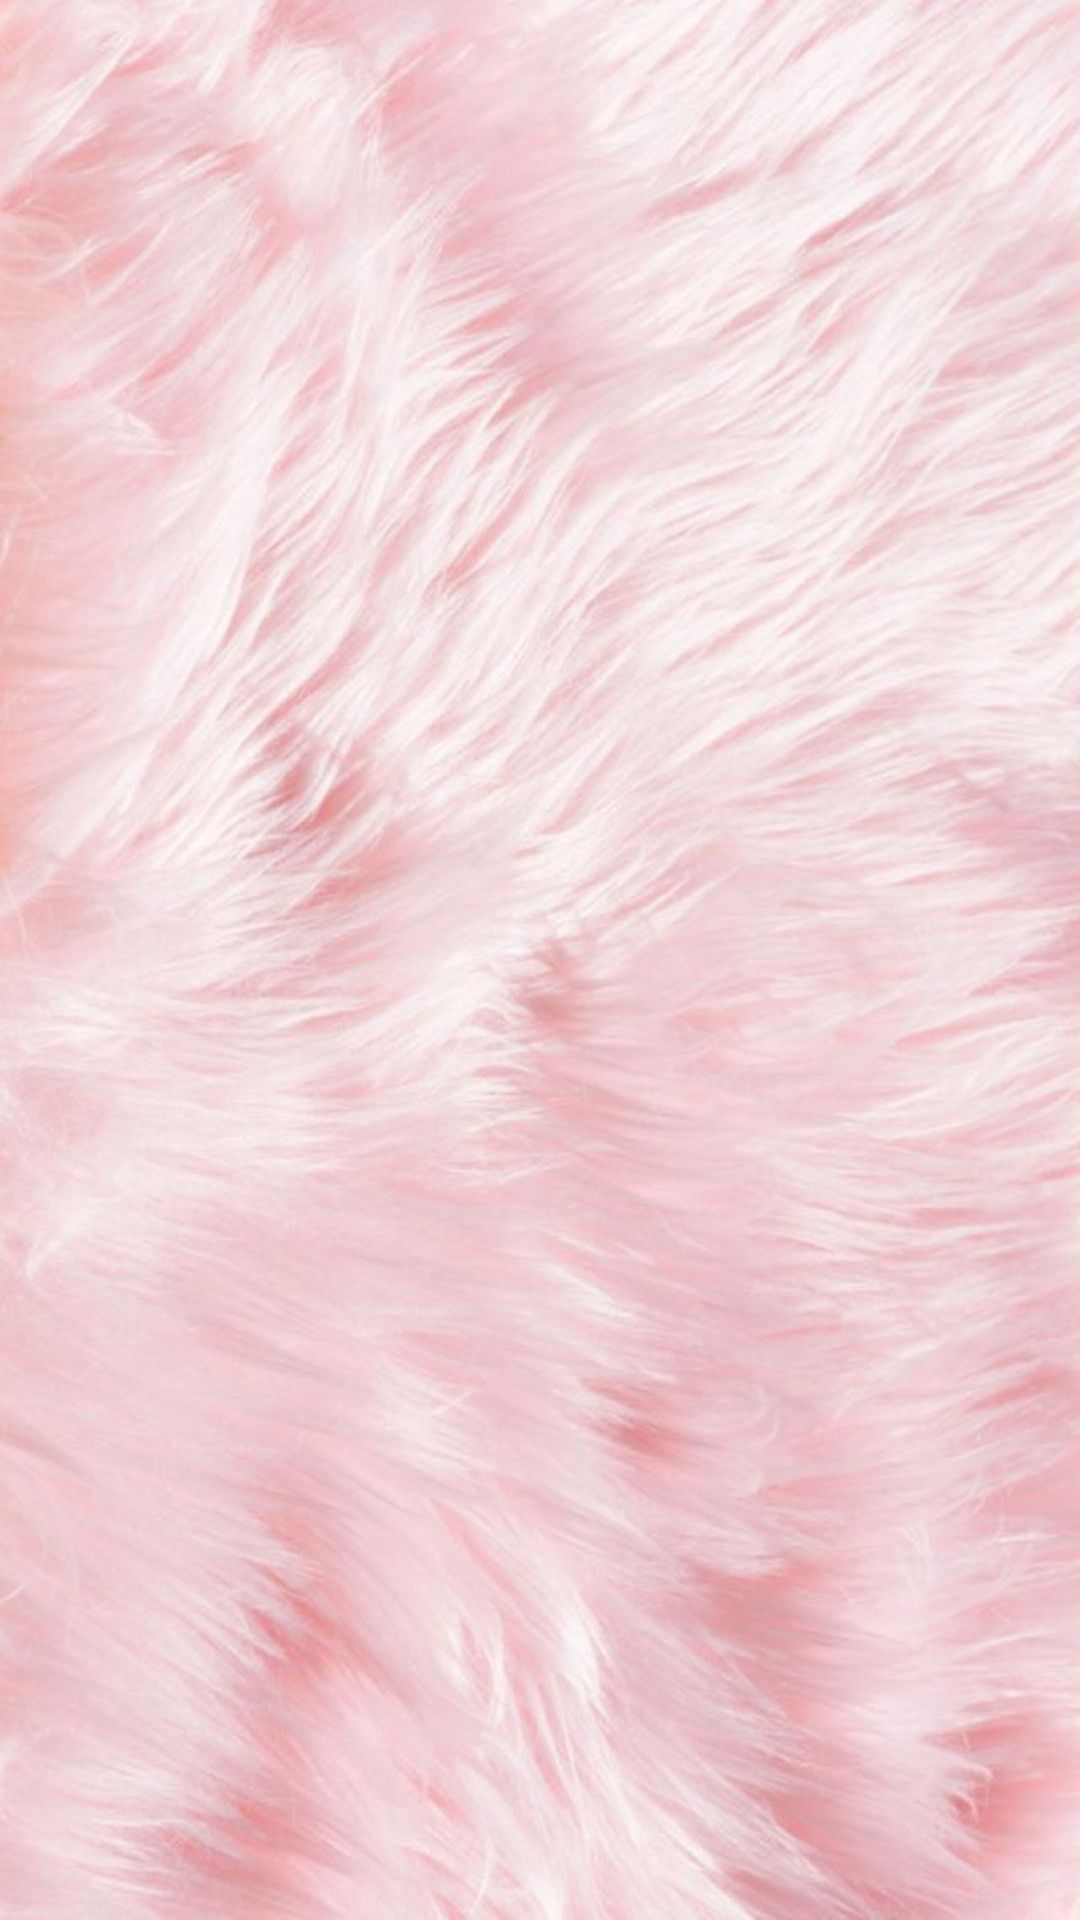 Pink Marble wallpaper for android